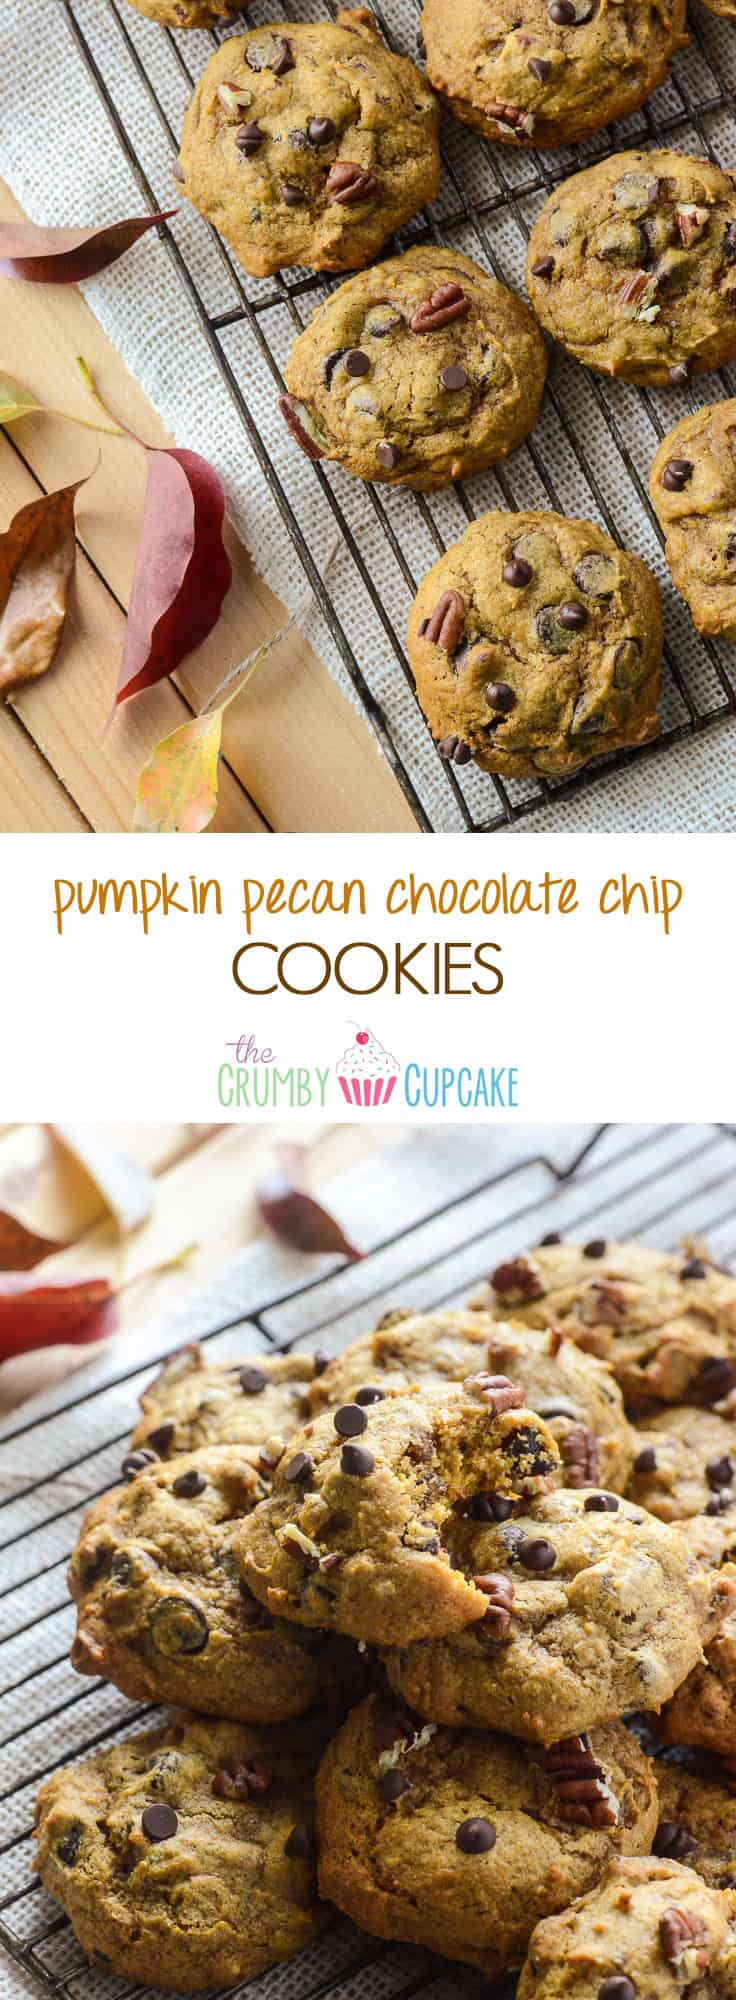 Pumpkin Pecan Chocolate Chip Cookies   A soft, cakey fall version of everyone's favorite cookie, packed with pumpkin & spice flavors! You won't be able to stop at one!